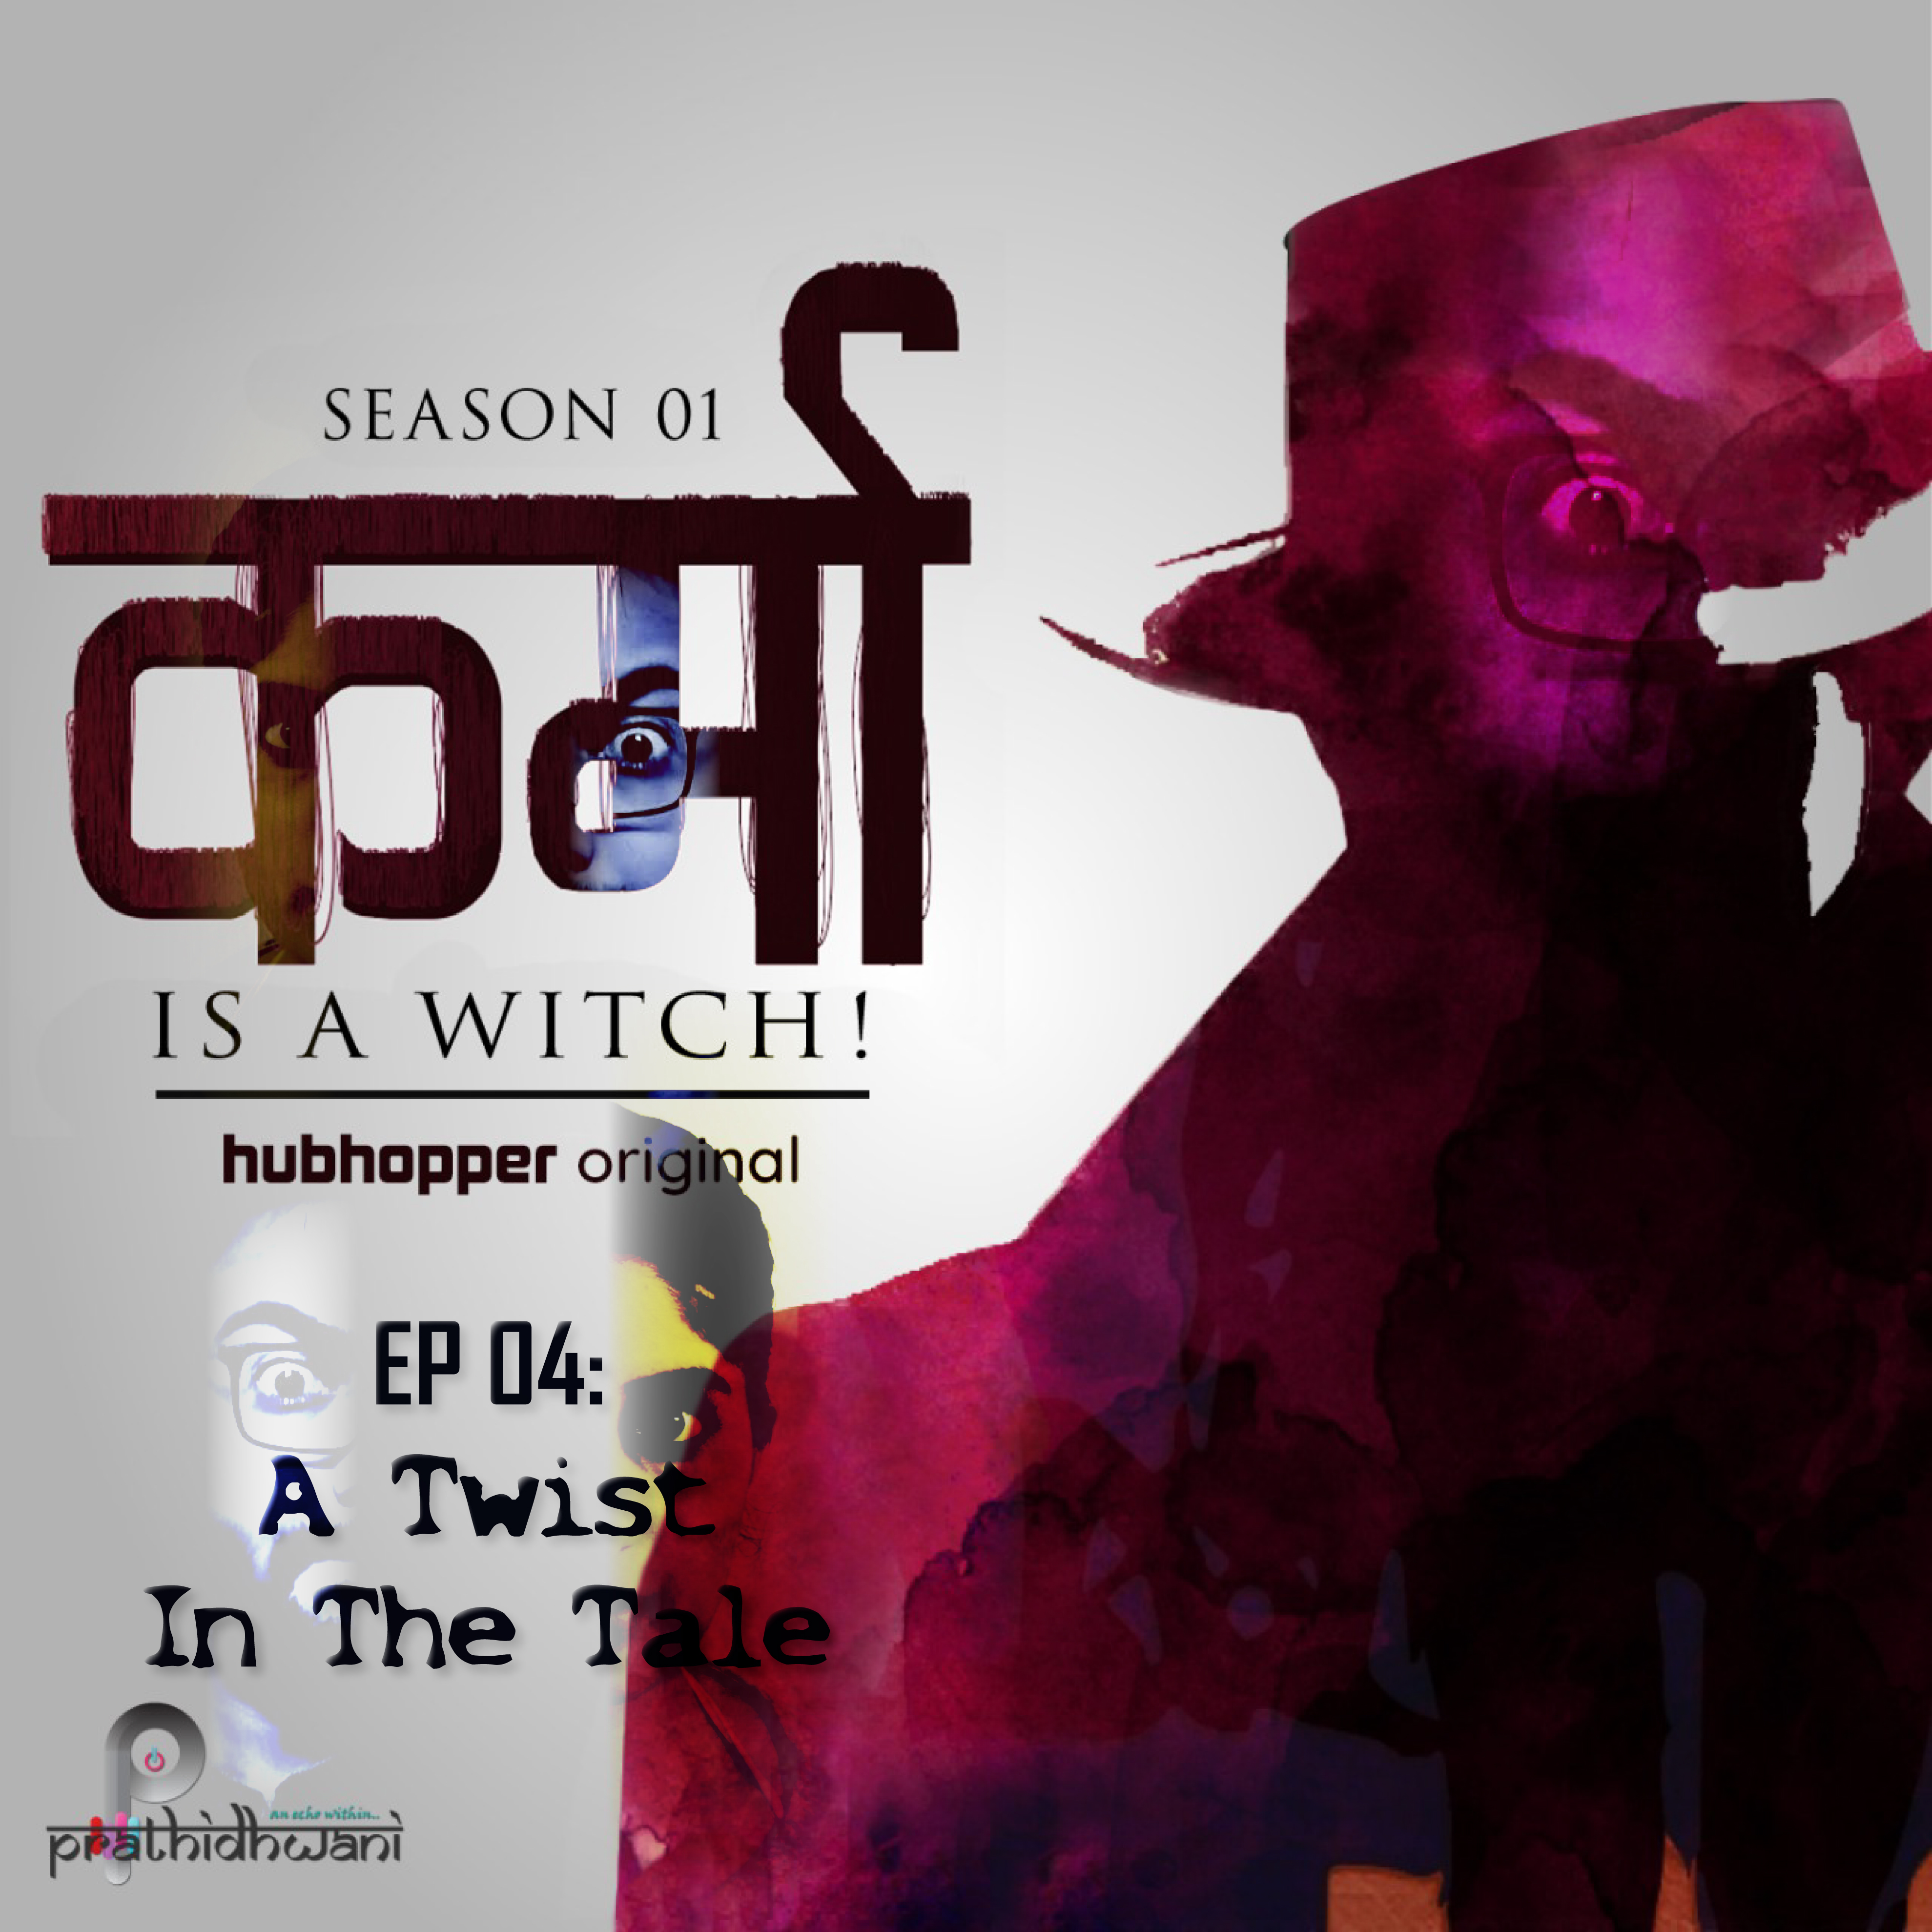 S01EP04: A Twist In The Tale